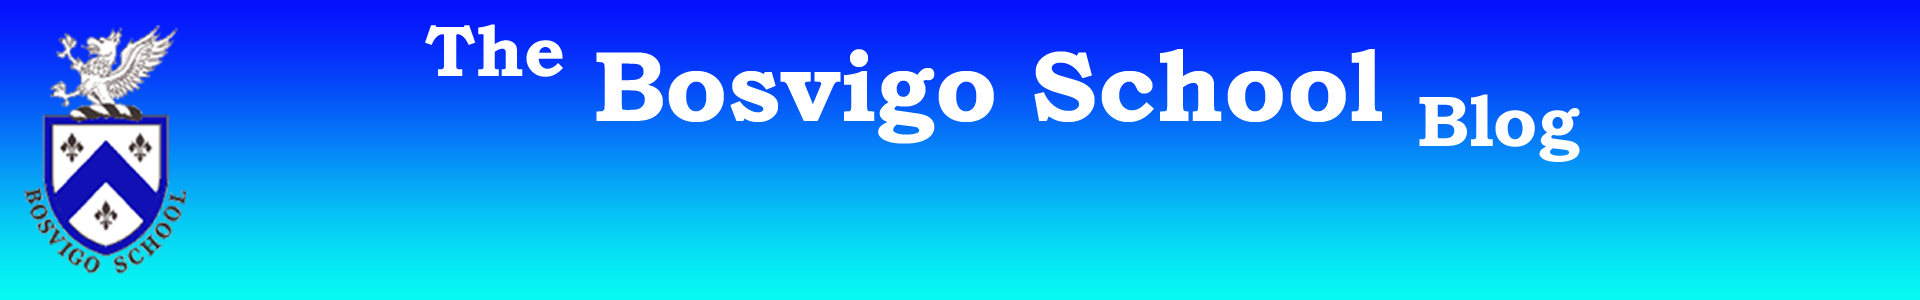 The Bosvigo School Blog